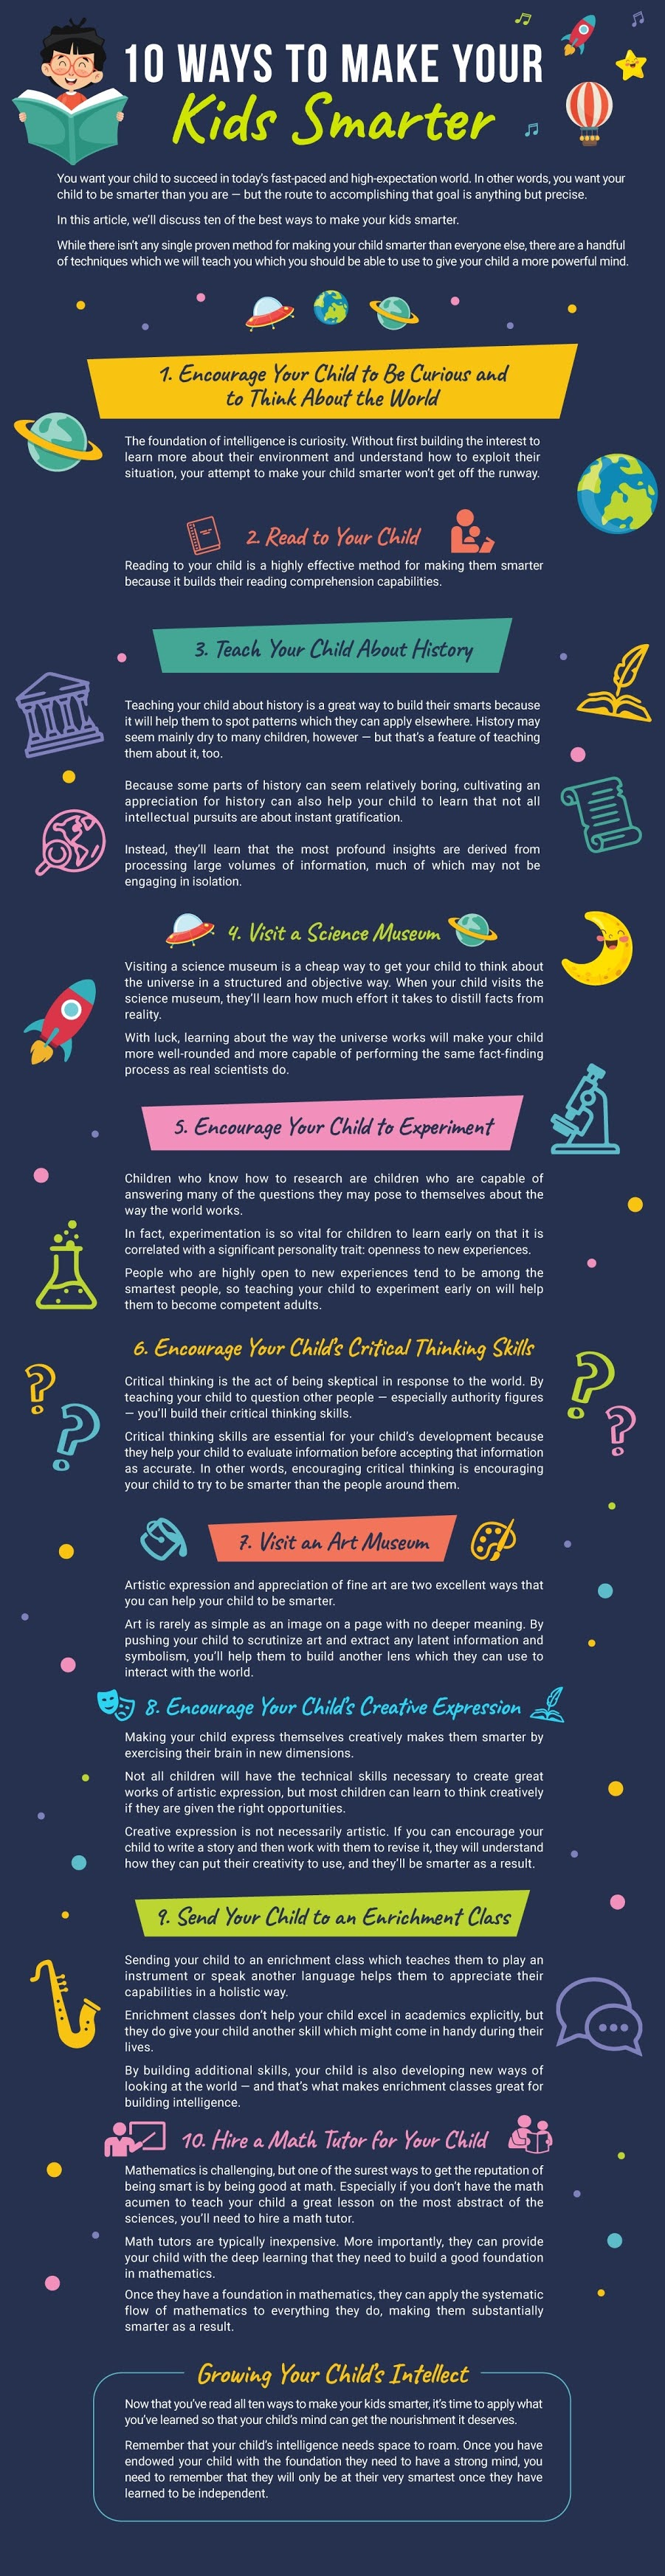 10 Ways To Make Your Kids Smarter #infographic#Education #Kids #Kids Smarter